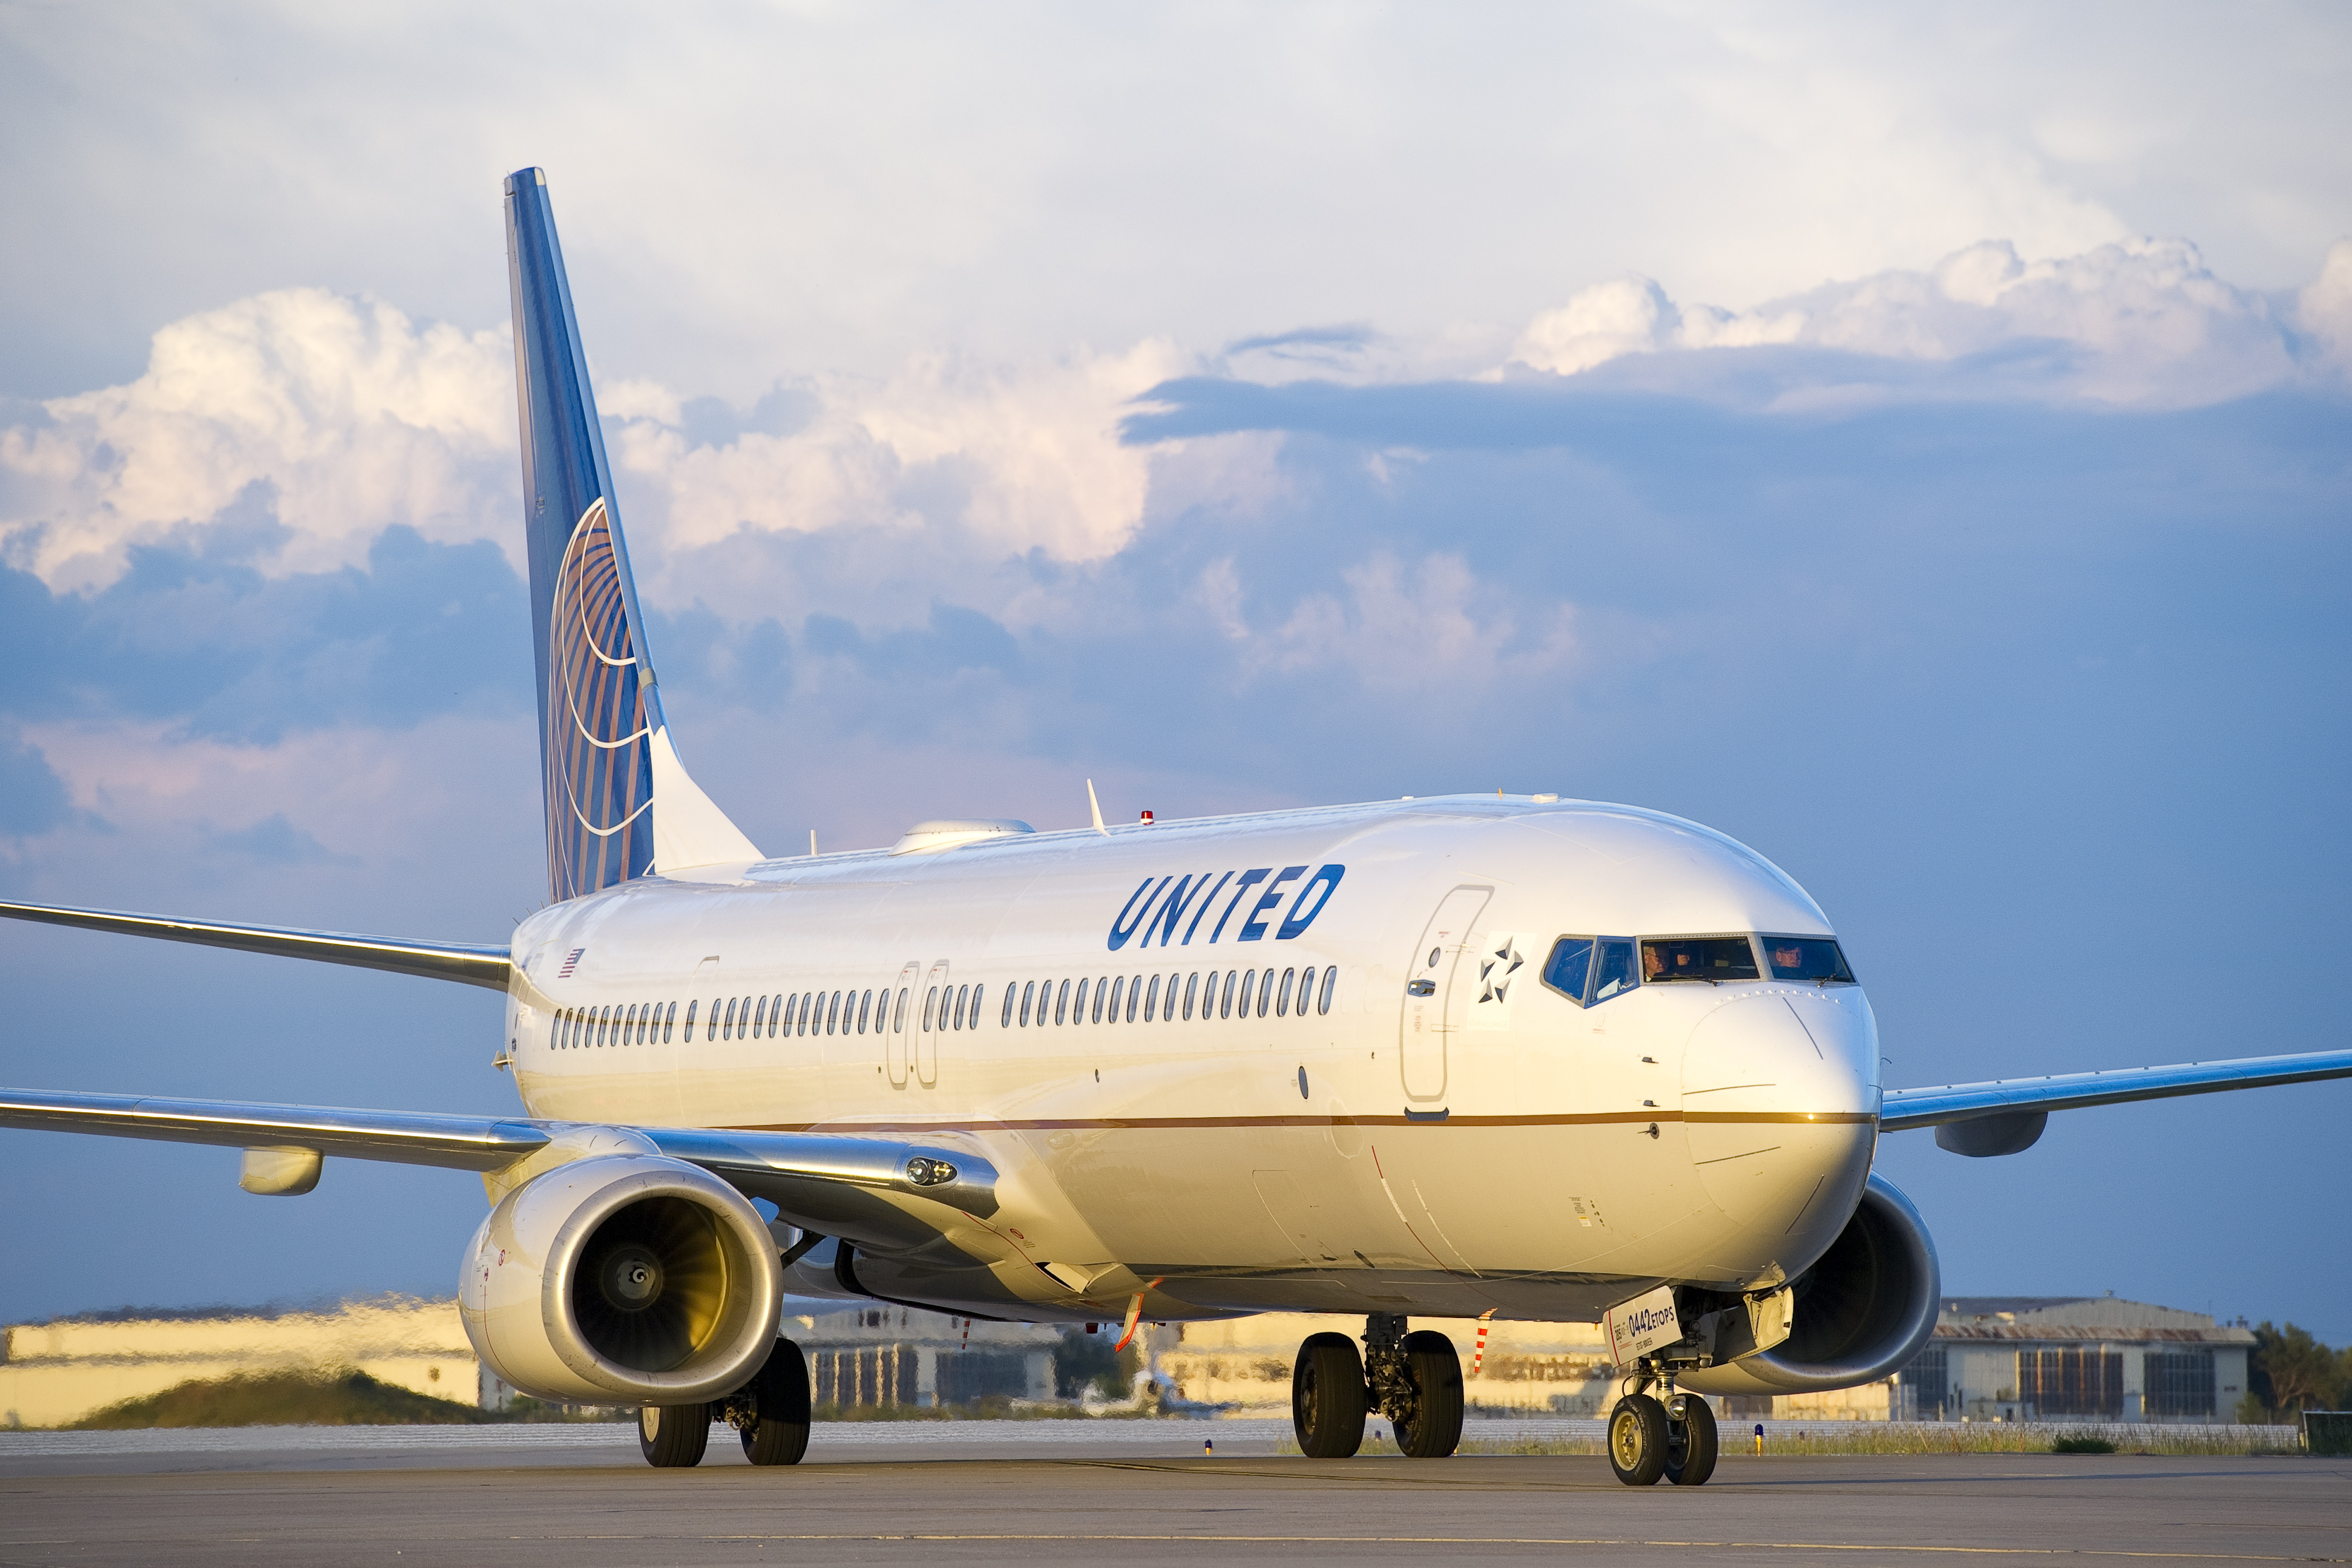 United Airlines suspended the pilots pending an investigation (Picture: United Airlines)